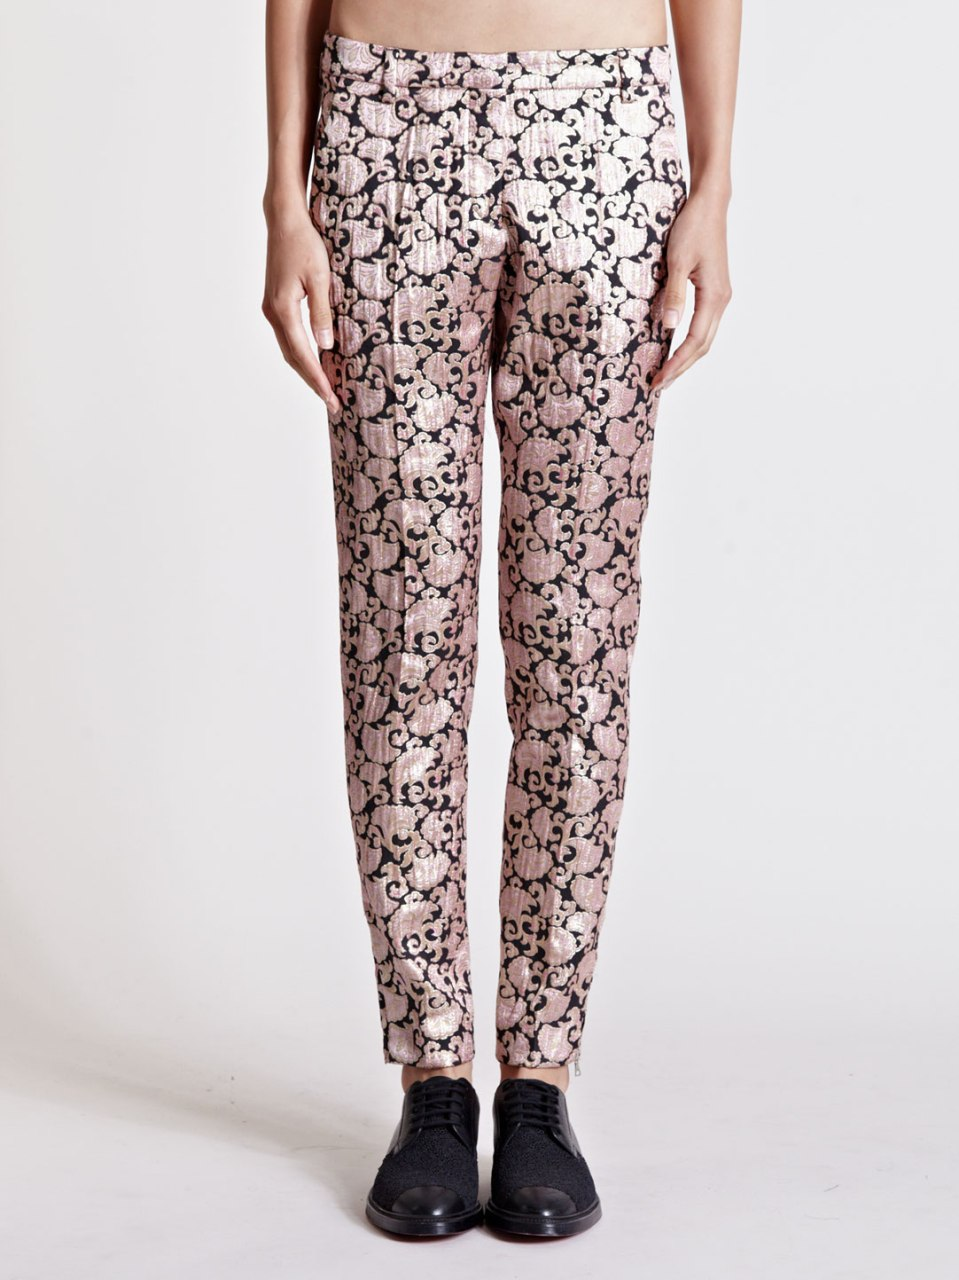 Dries-Van-Noten-Pala-Pants